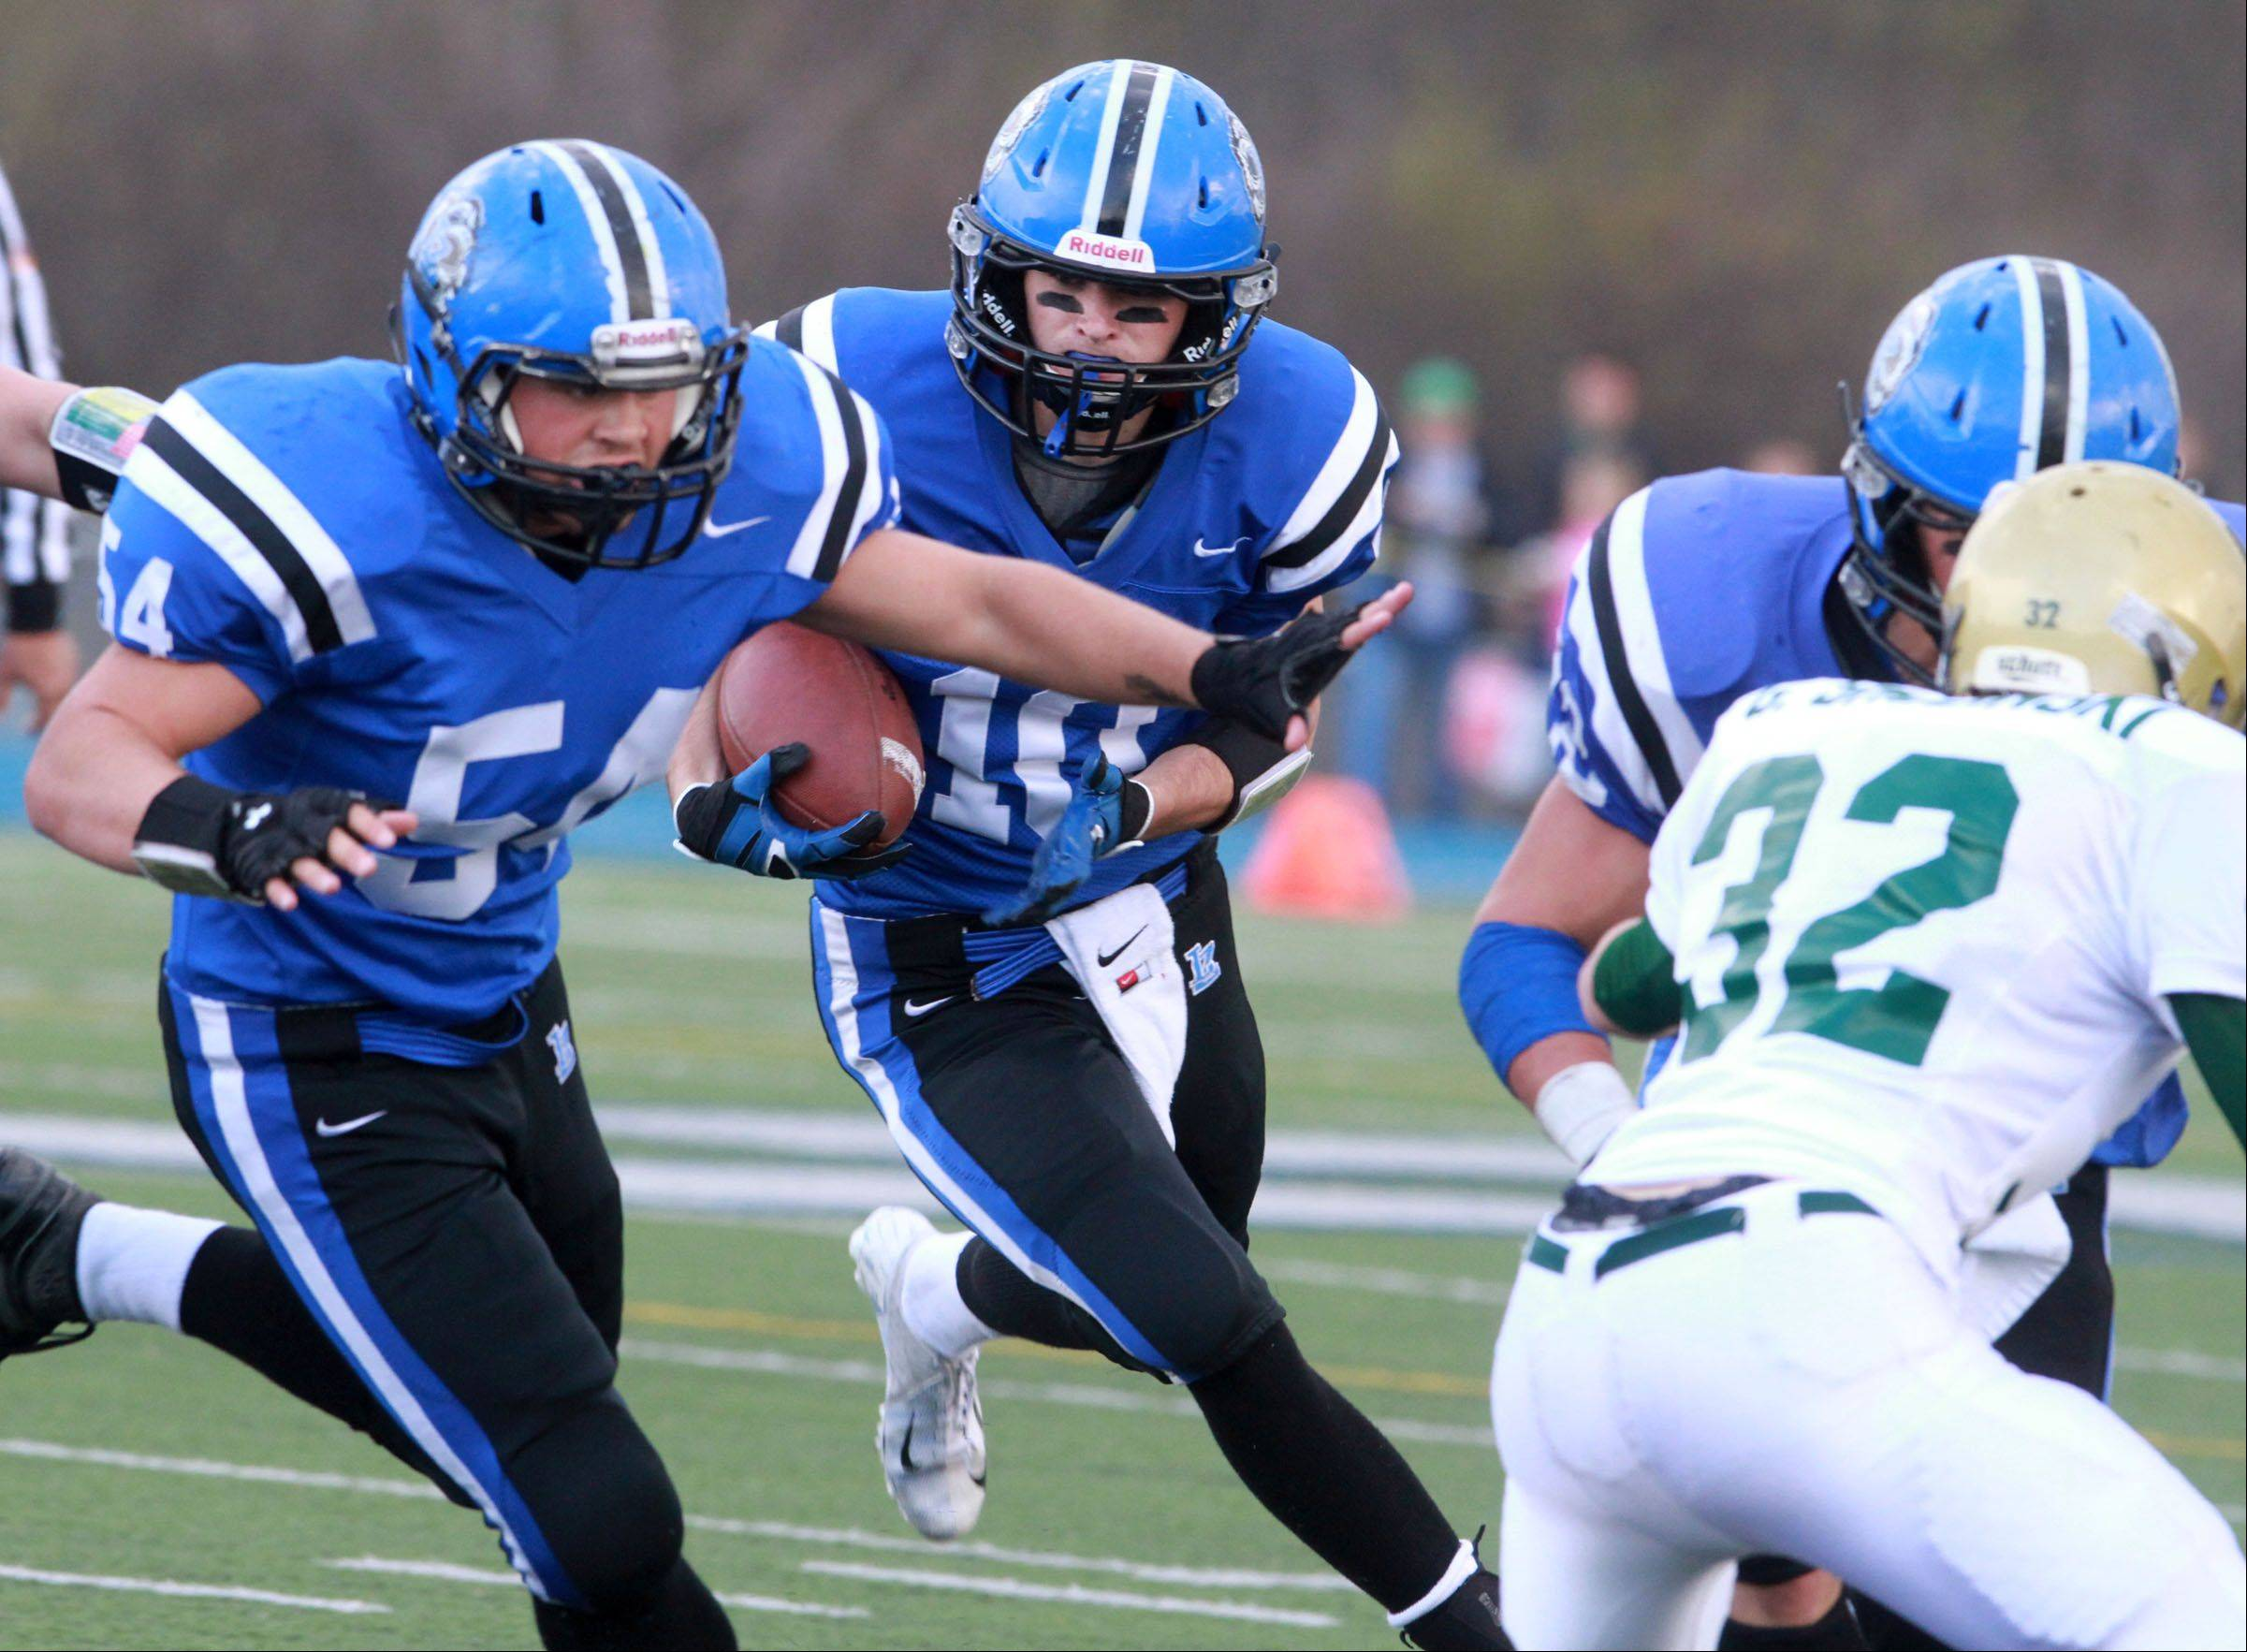 Lake Zurich's Jake Stauner gets blocking from lineman Aaron Hussey as he runs the ball against Rockford Boylan in the Class 7A state quarterfinals at Lake Zurich on Saturday.